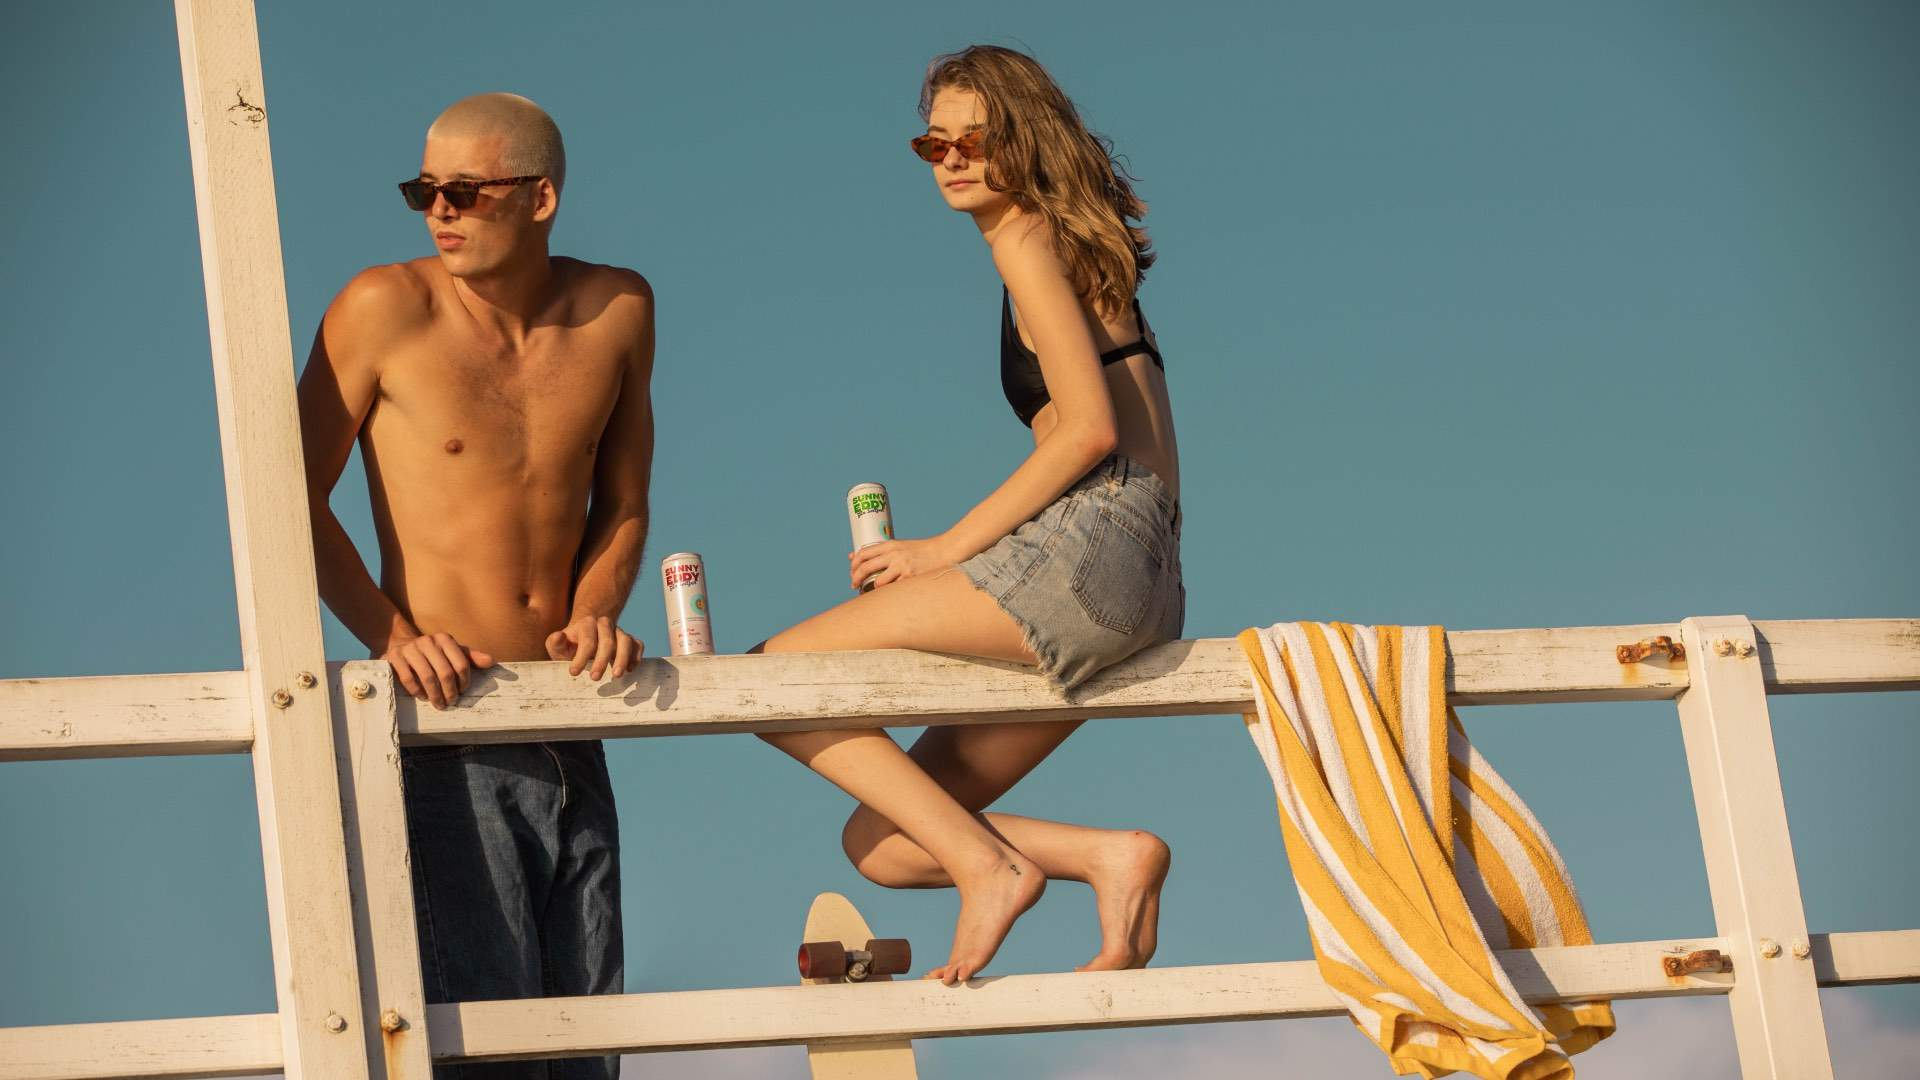 Five Ways to Make the Most of Long Summer Days (That Turn into Nights)